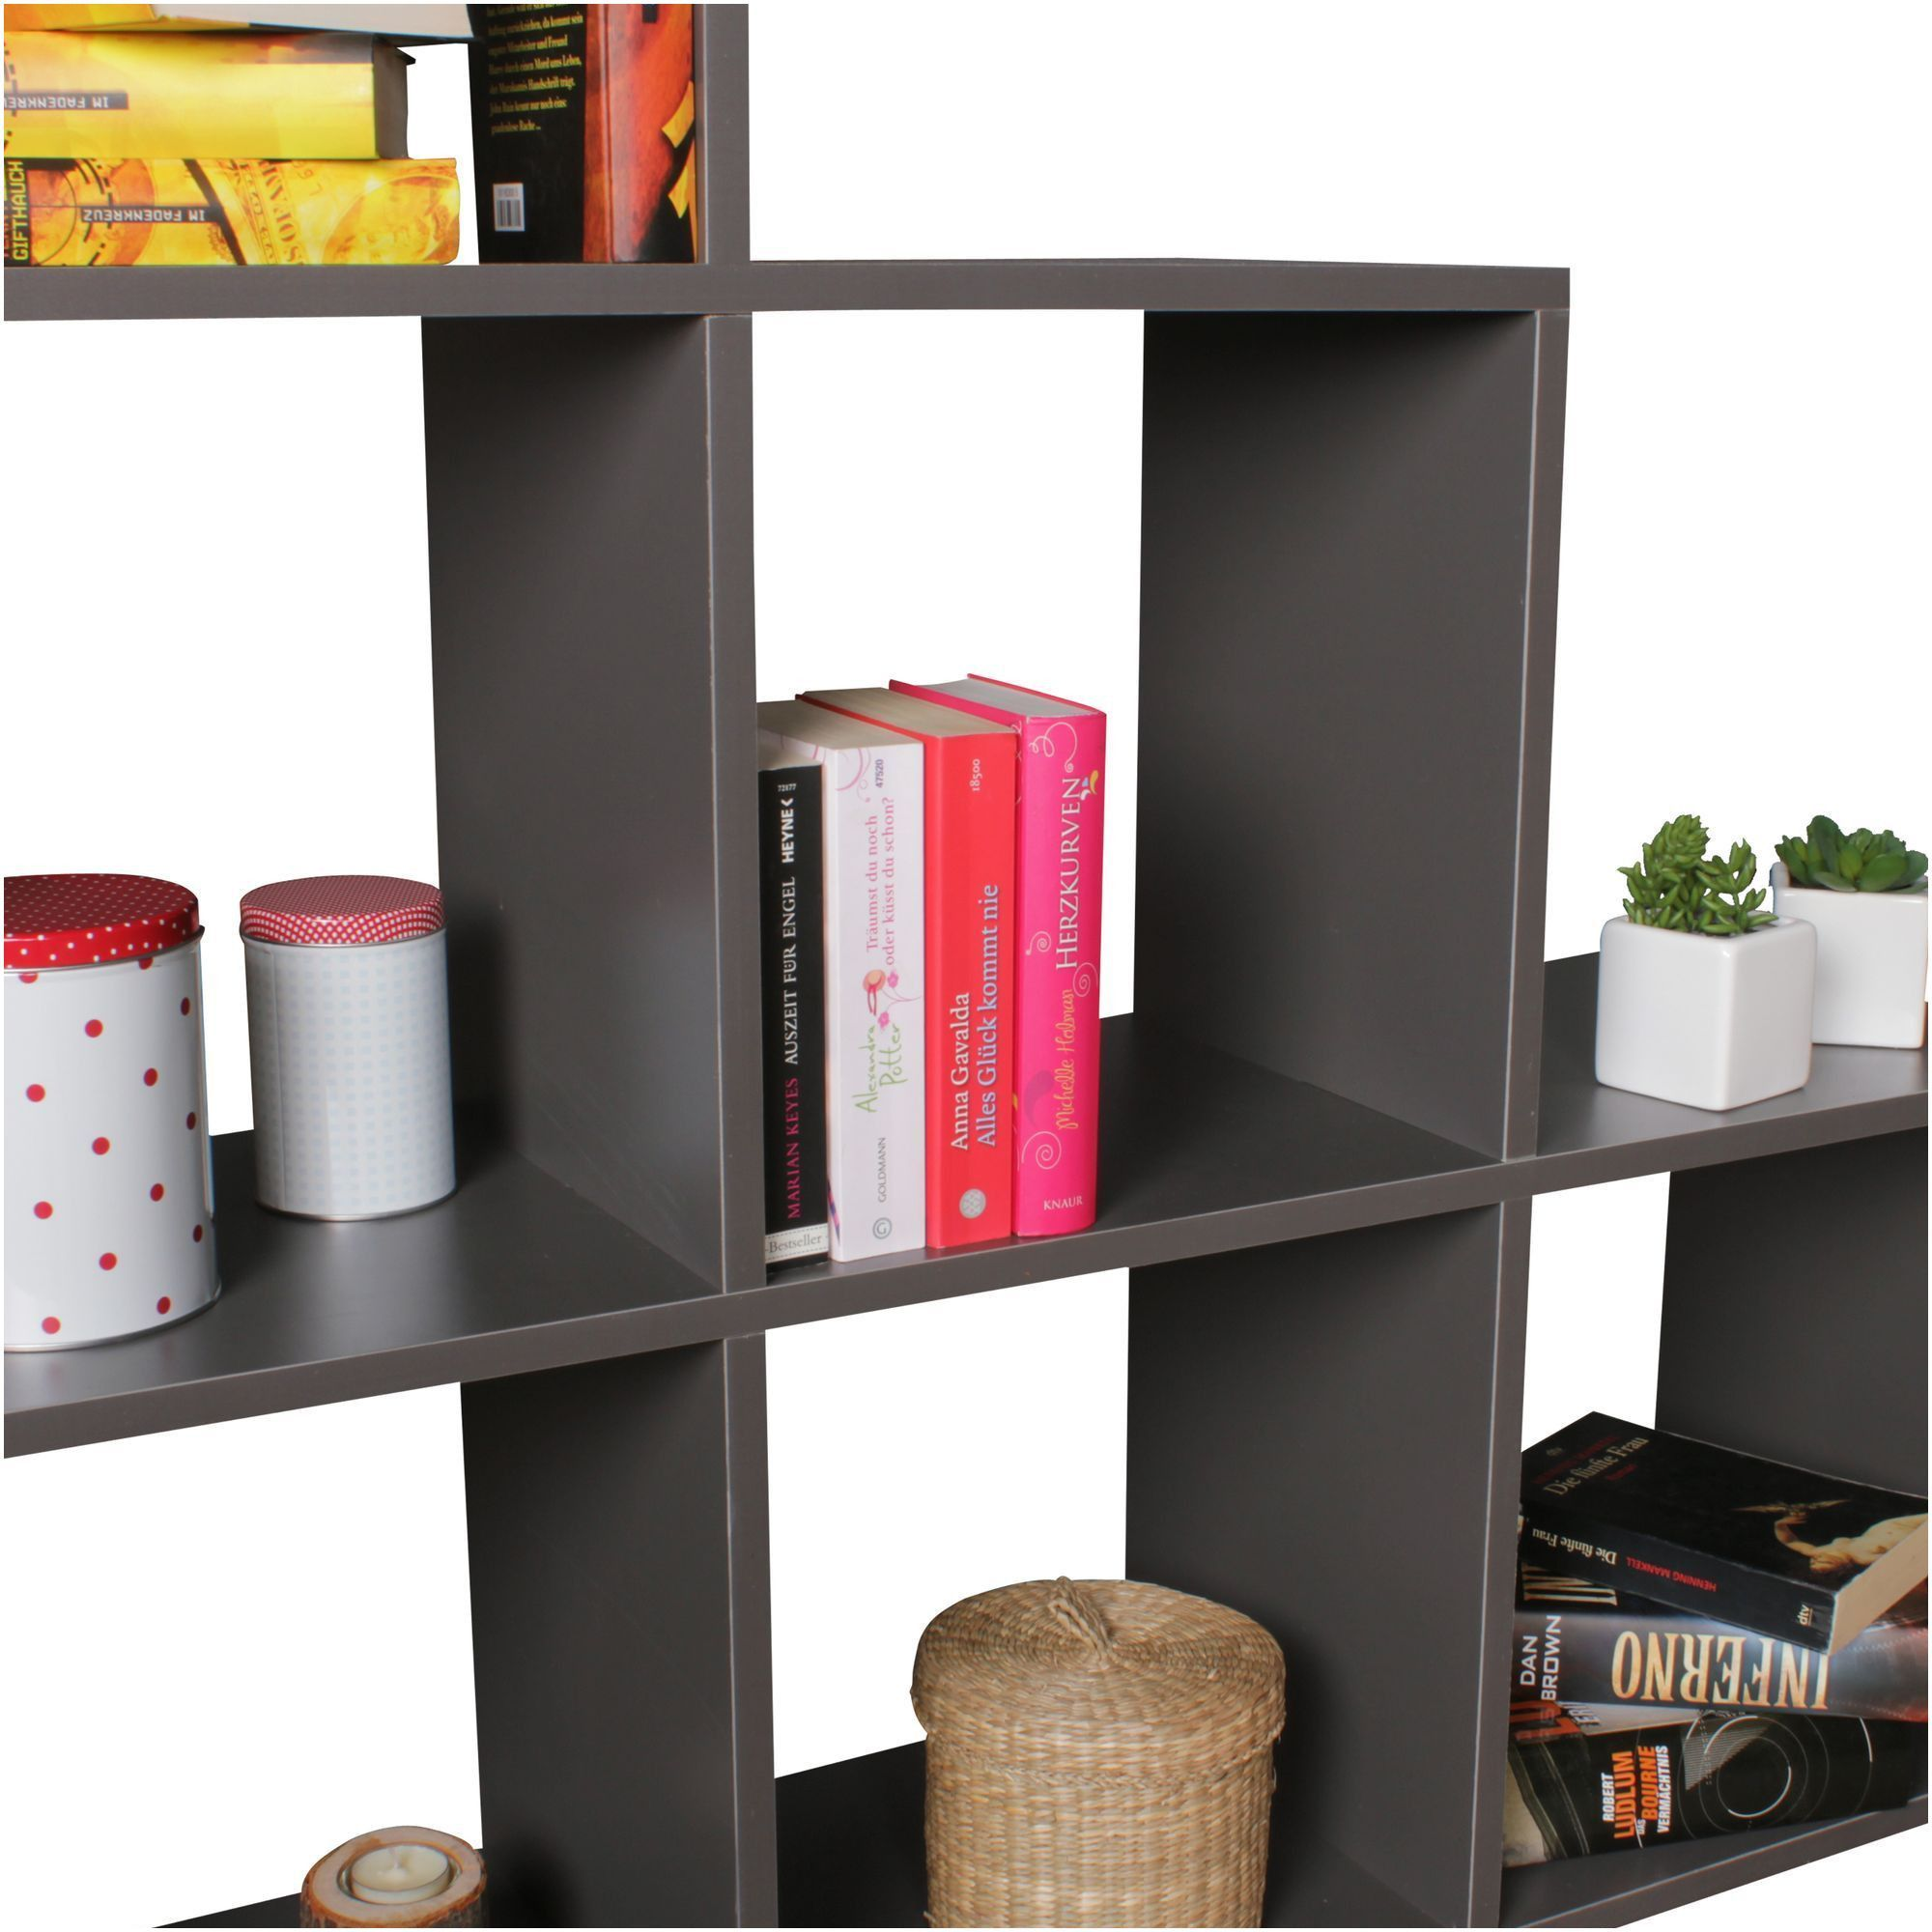 11 Sauber Fotografie Von Wohnzimmer Regal Poco Williebi Shop 11 Sauber Fotografie Vo In 2020 Wall Cabinets Living Room Living Room Shelves Decorative Room Dividers